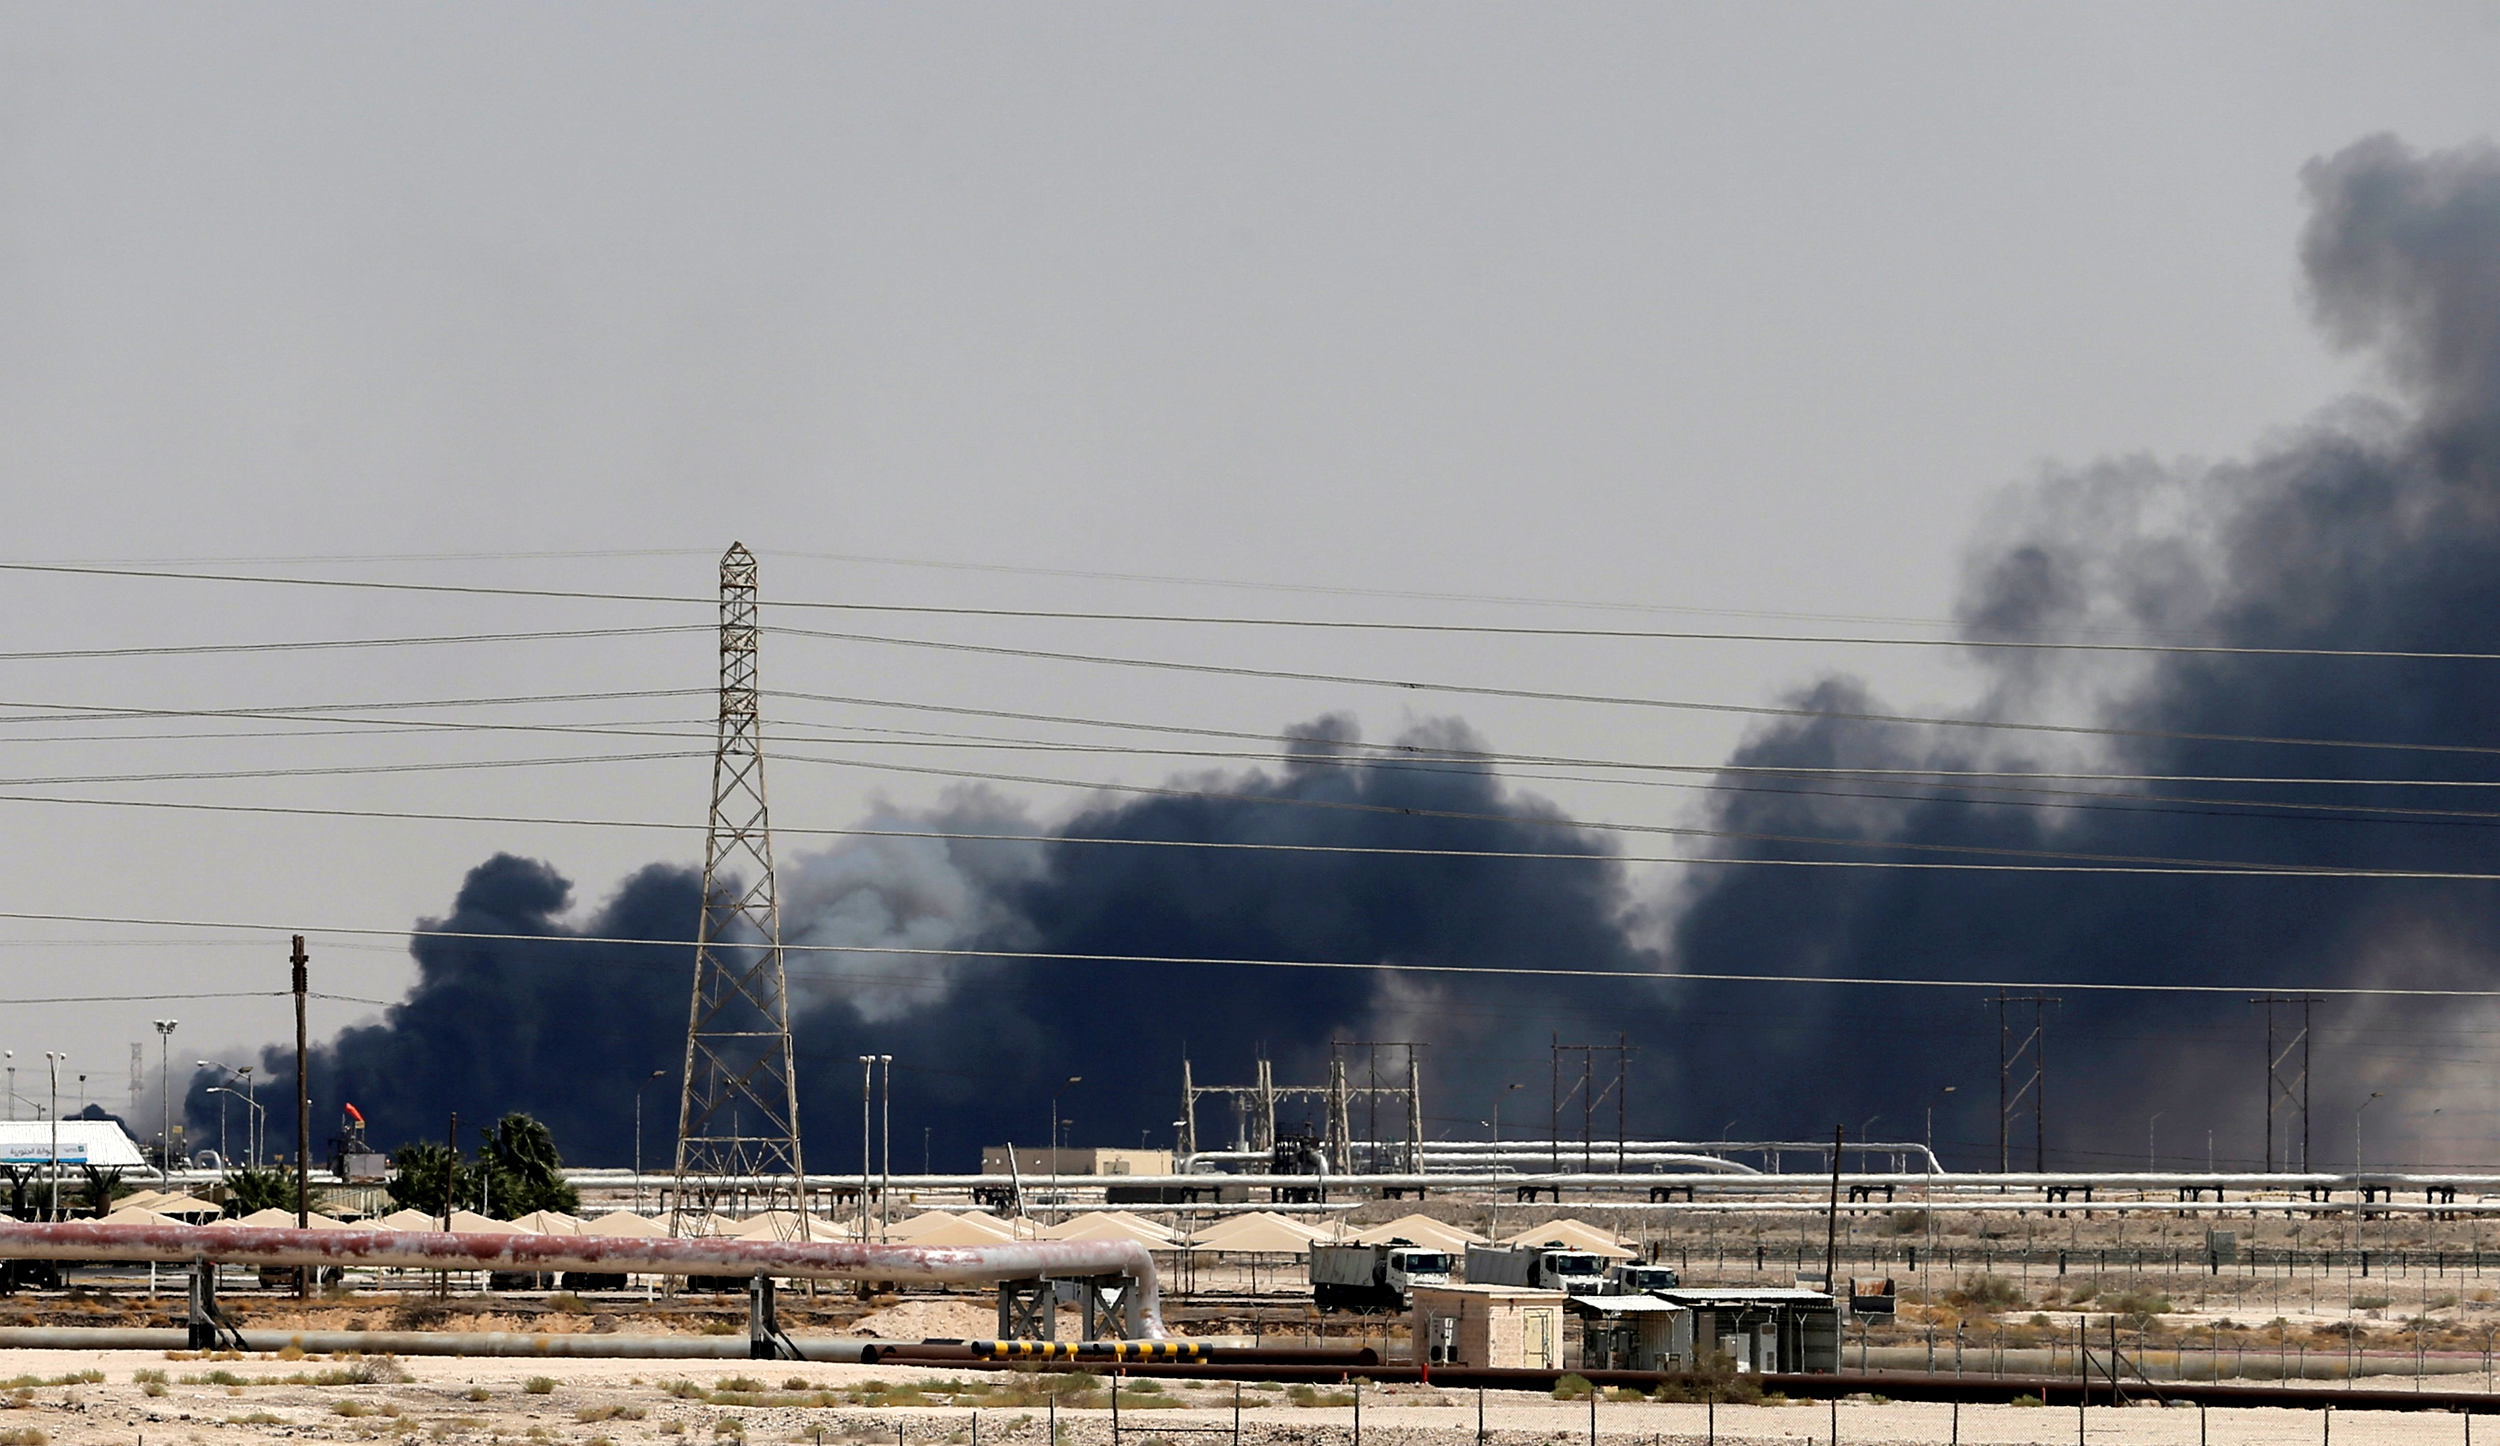 Attack-on-a-major-Saudi-oil-facility-was-launched-from-Iran,-U.S.-intelligence-shows